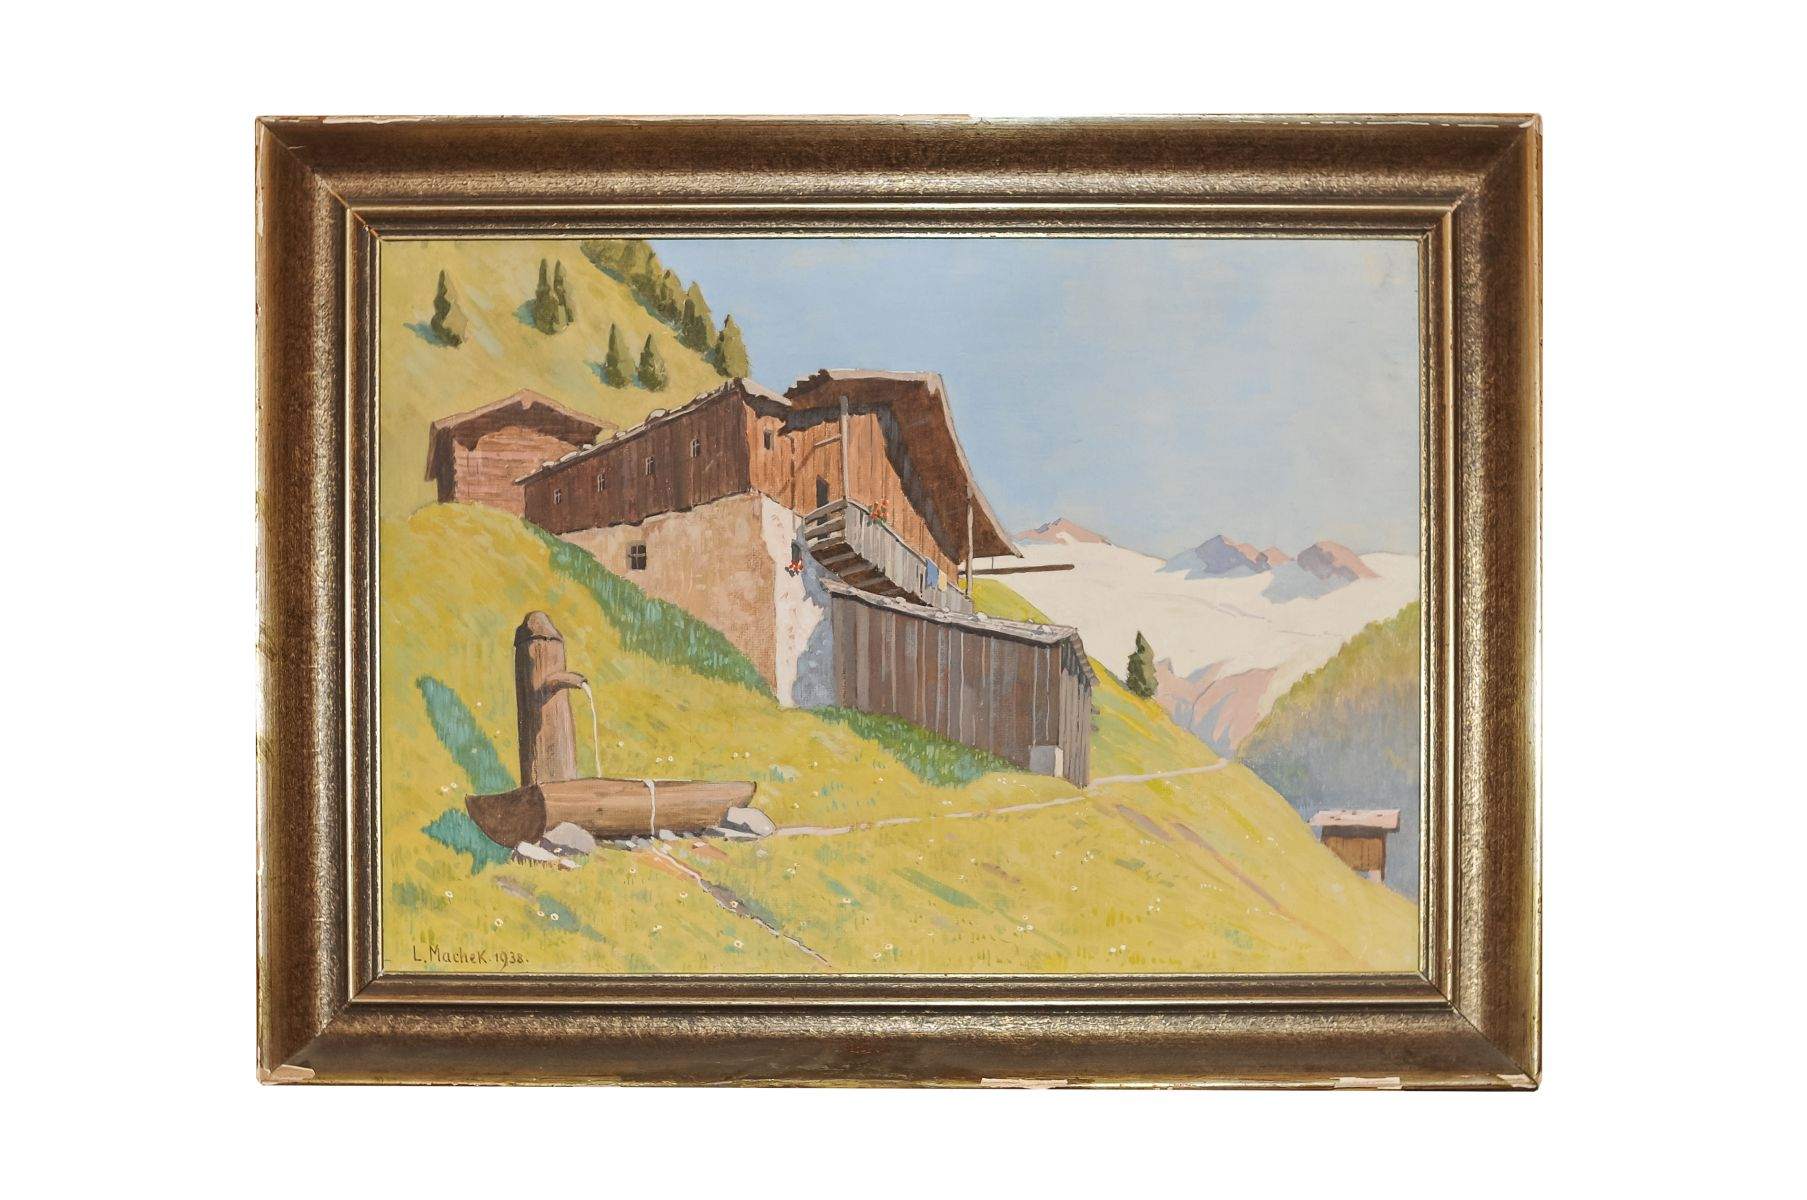 "#3 L. Machek 1938 """" Farm in the mountains "" 